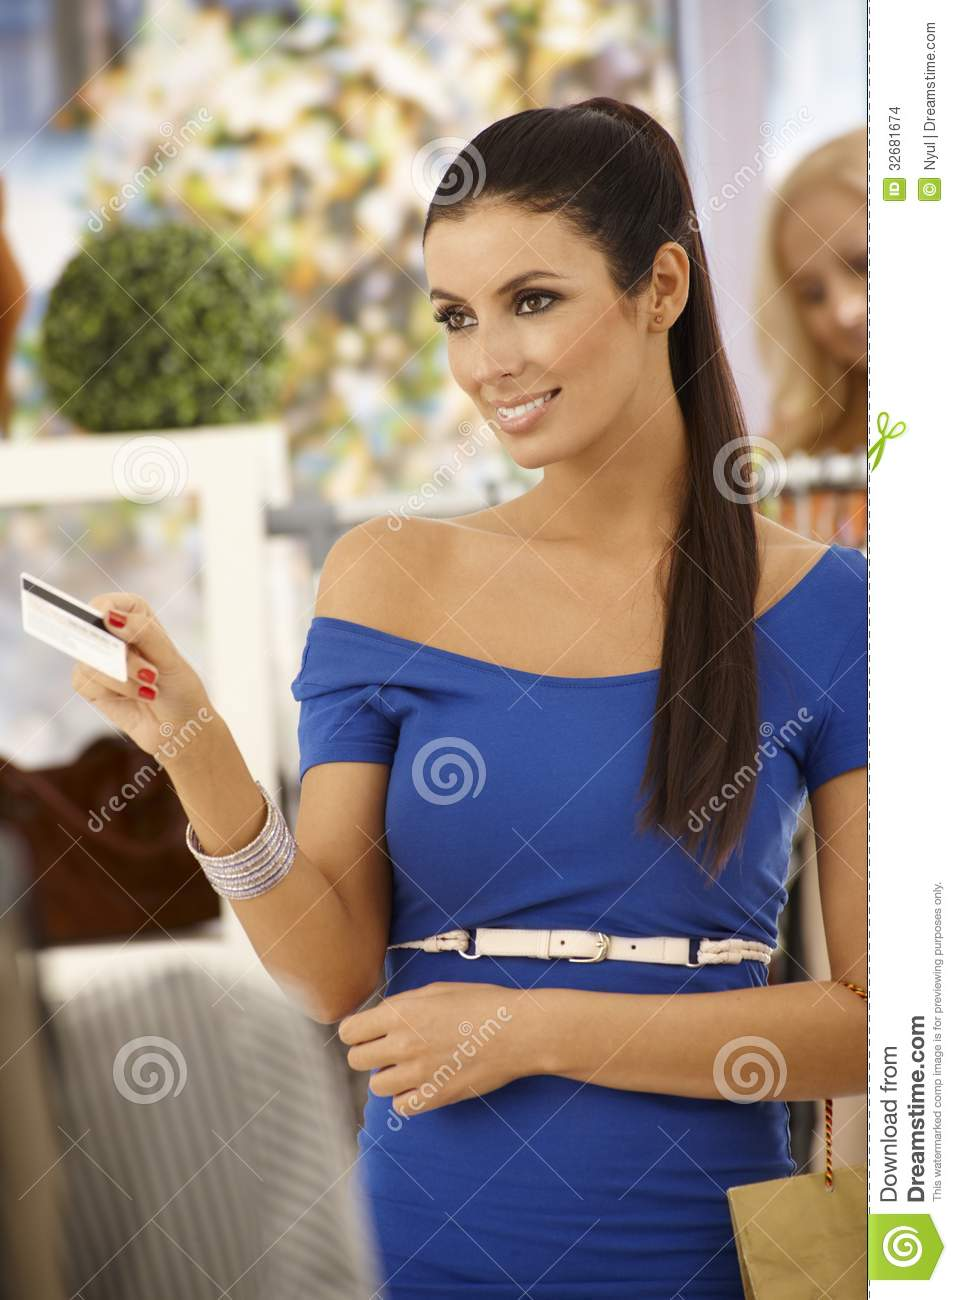 Pretty woman clothing store Cheap online clothing stores